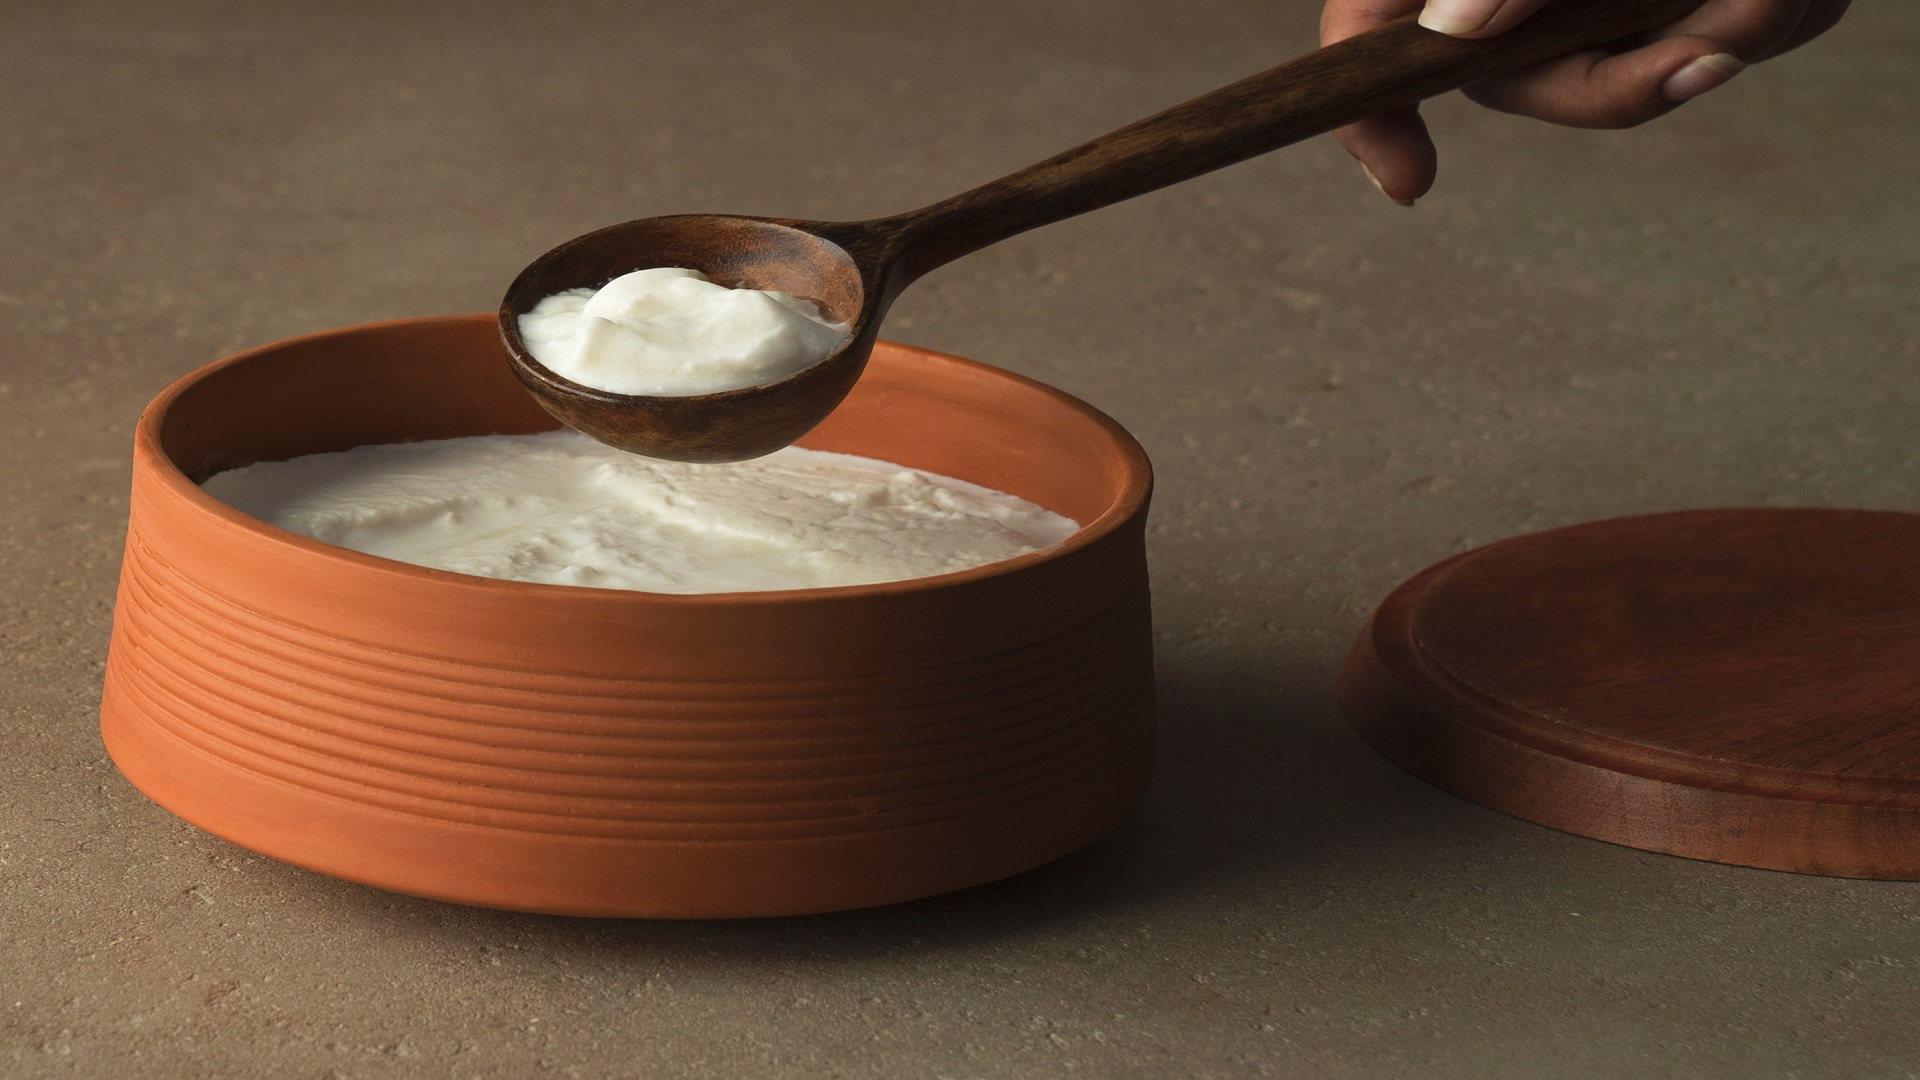 How terracotta curd setters are taking over the market - Ellementry